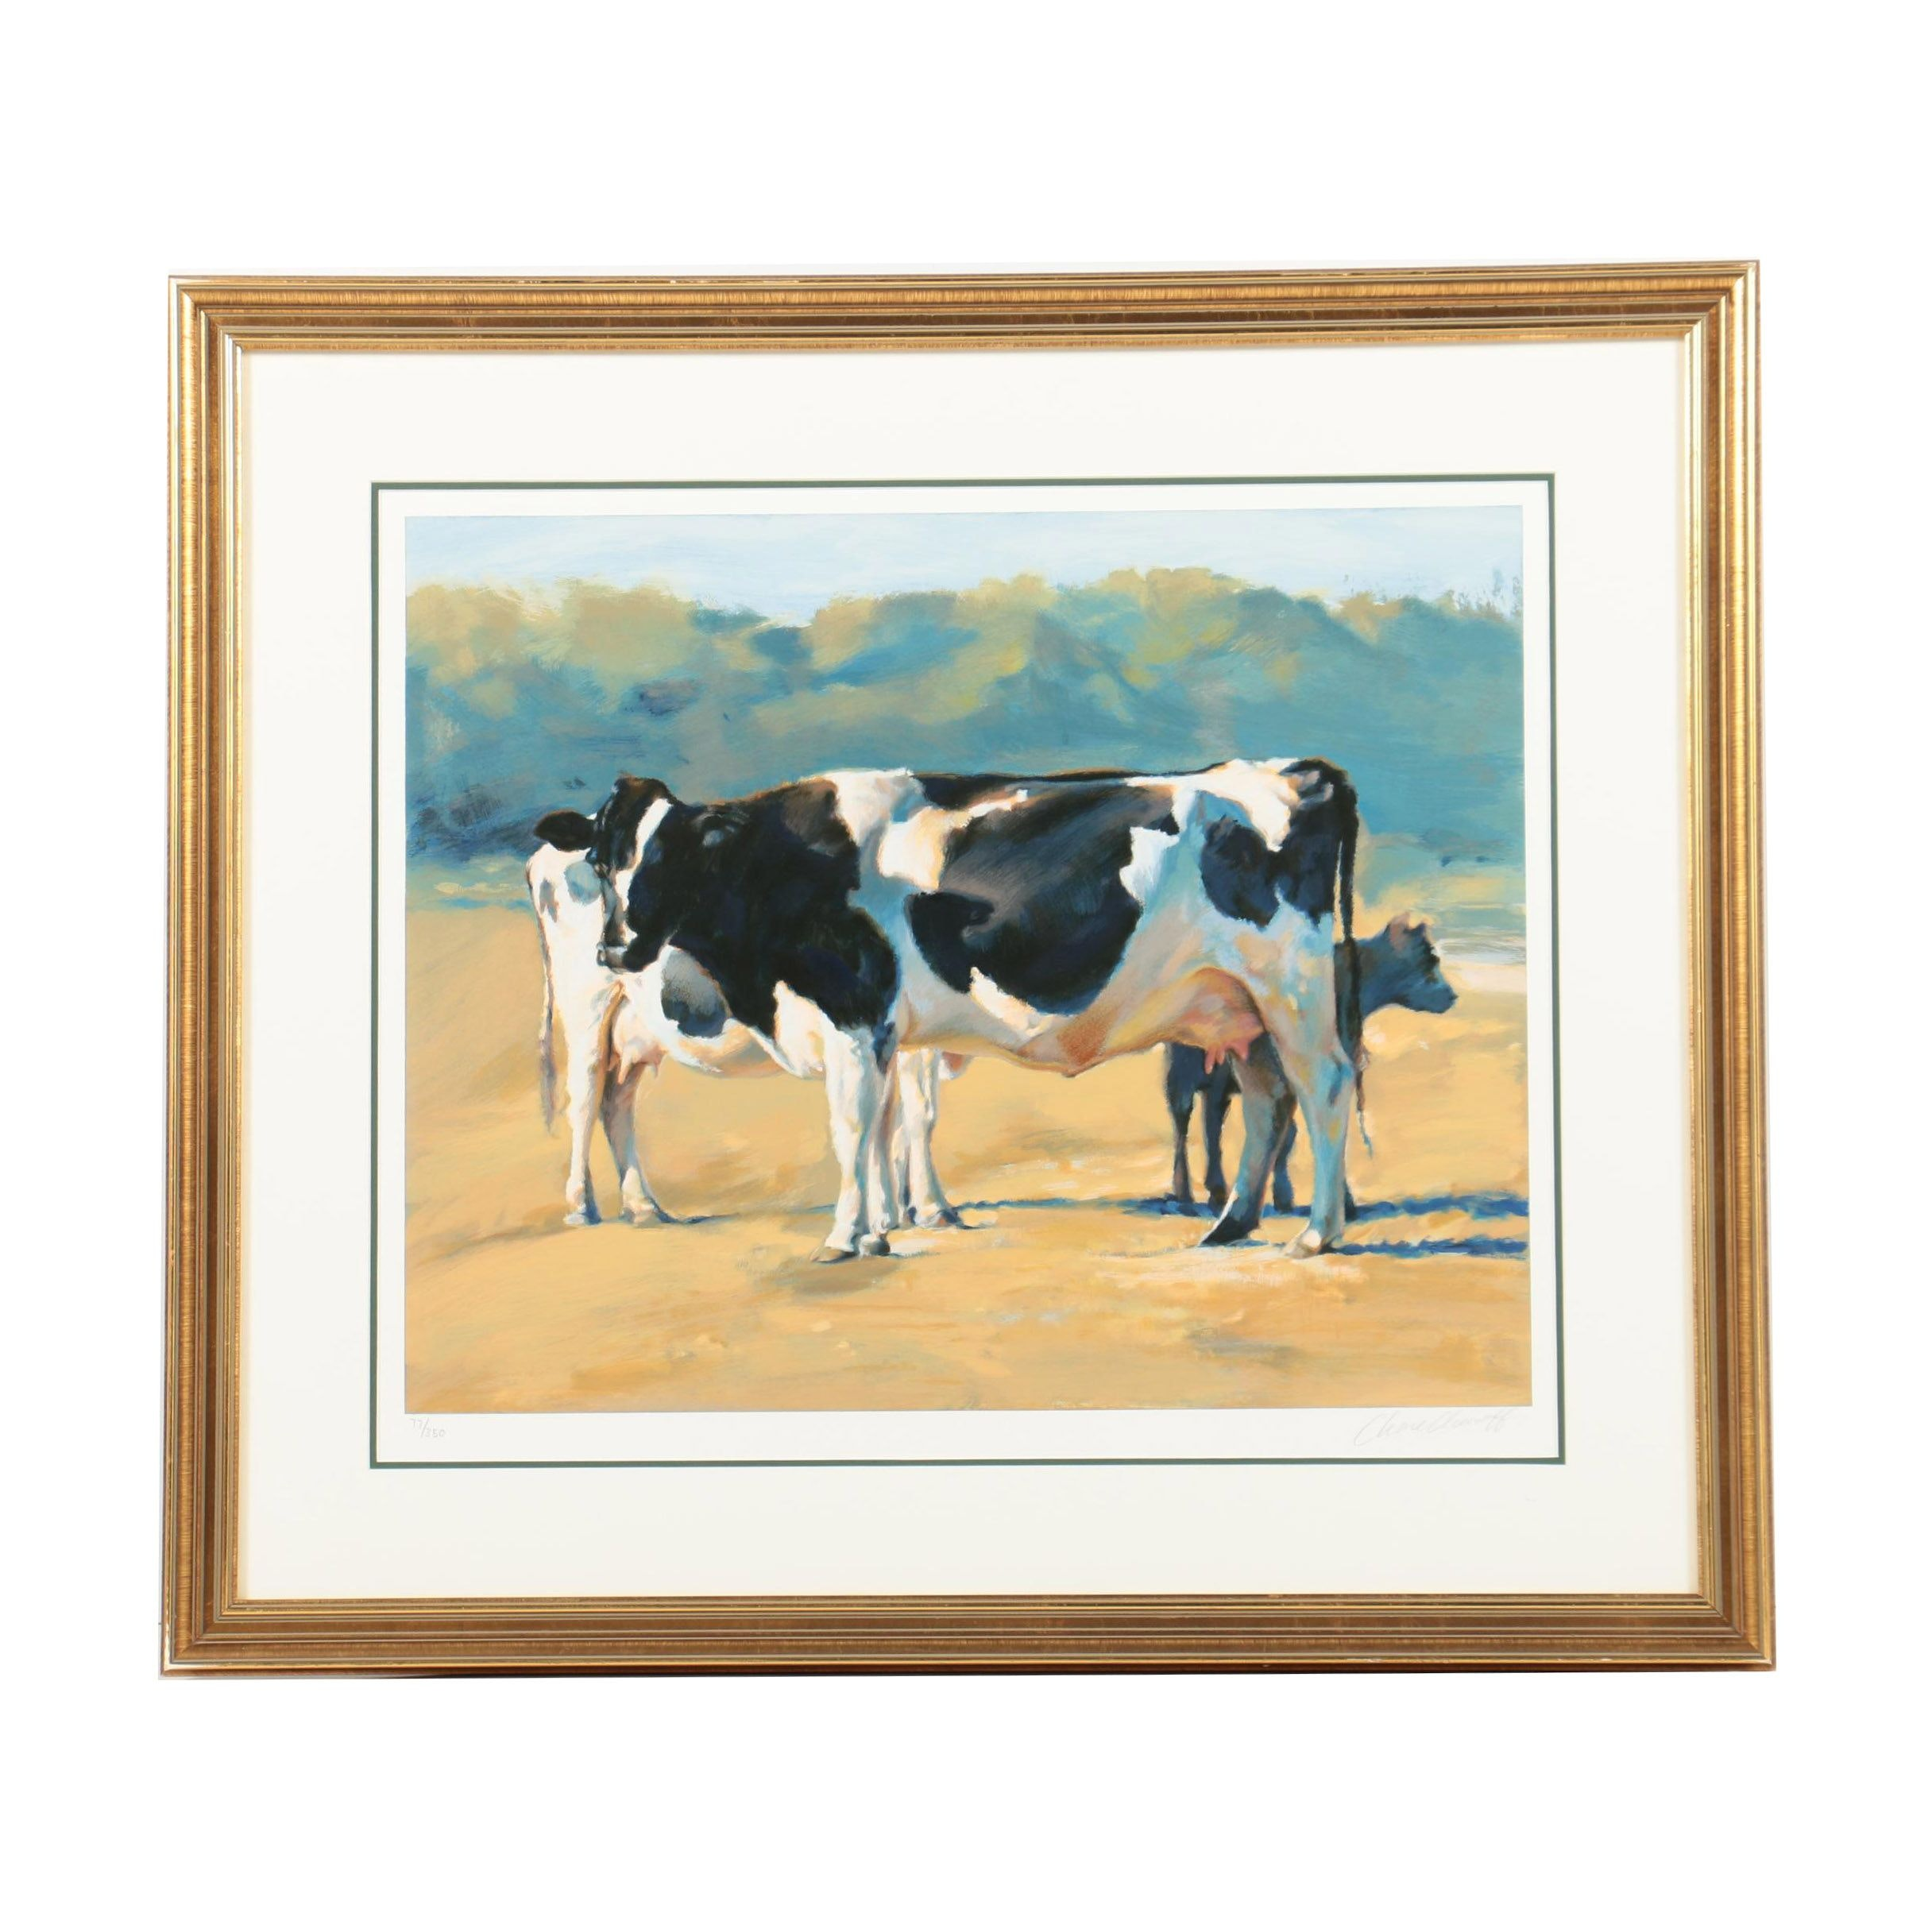 Limited Edition Offset Lithograph on Paper of Cows after Chase Chenoff